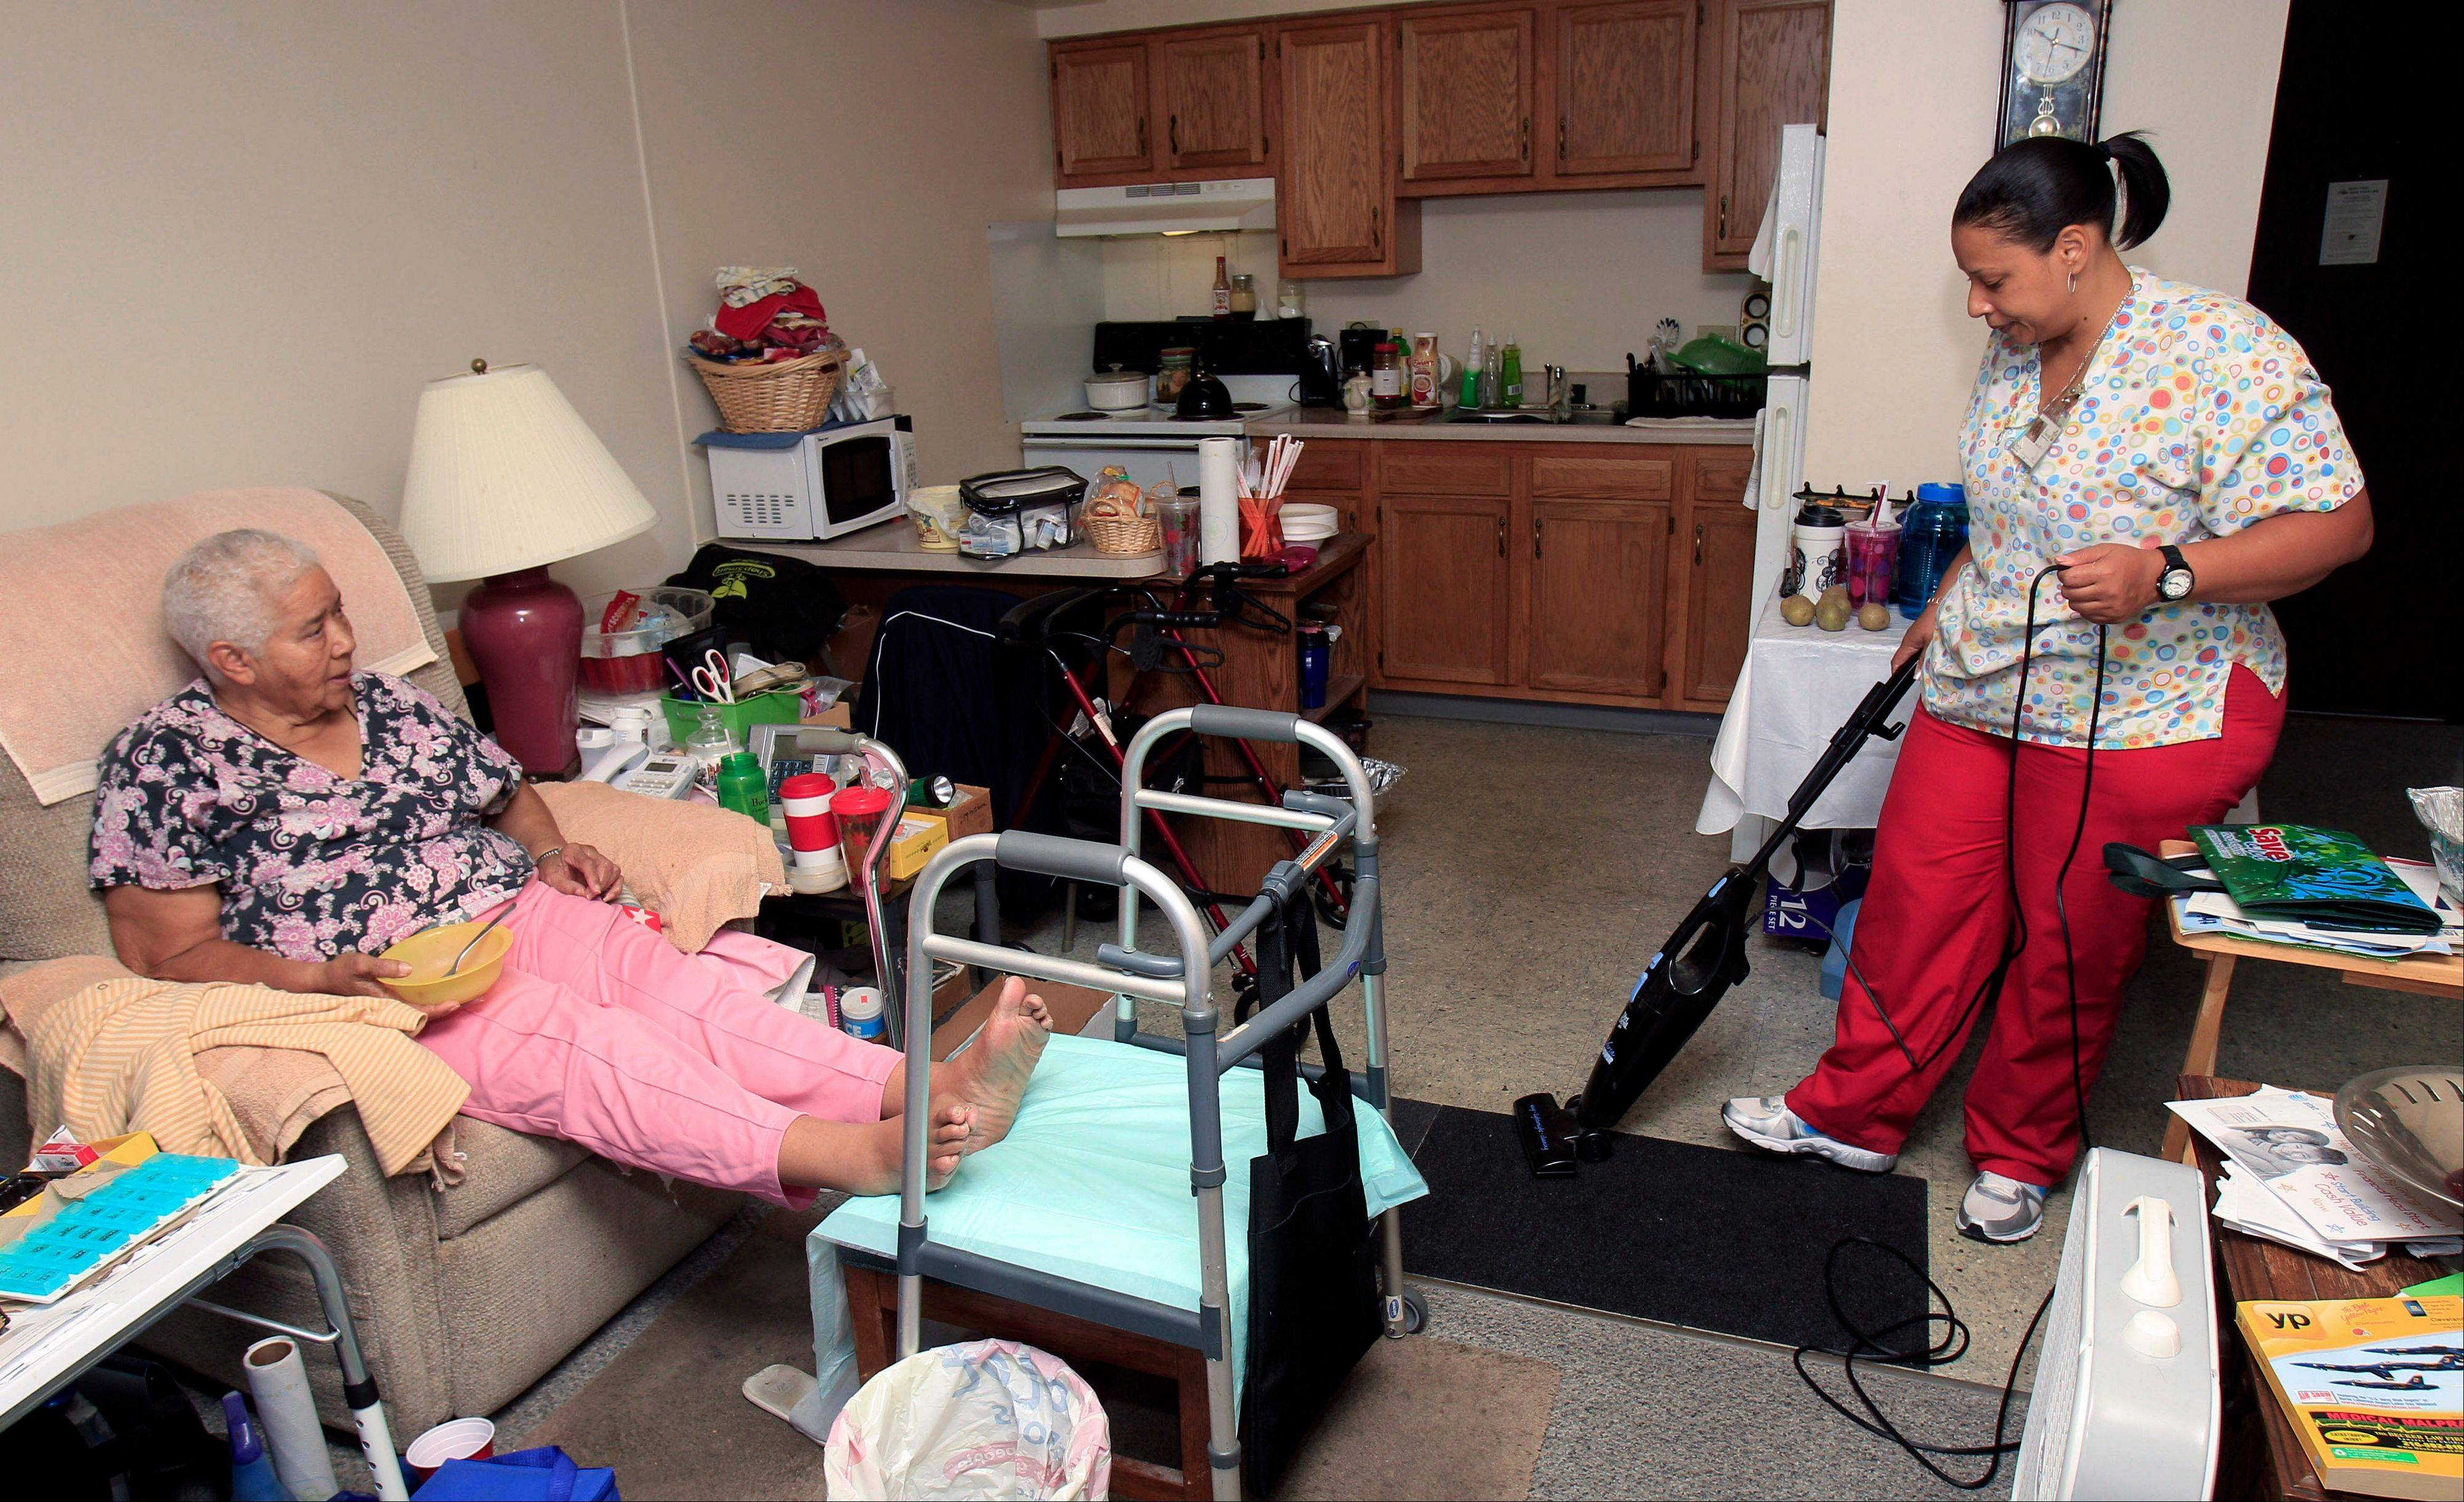 Taura Tate, right, a home care aide since 1999, vacuums as Crell Johnson, 76, looks on at Johnson's apartment in Euclid, Ohio.